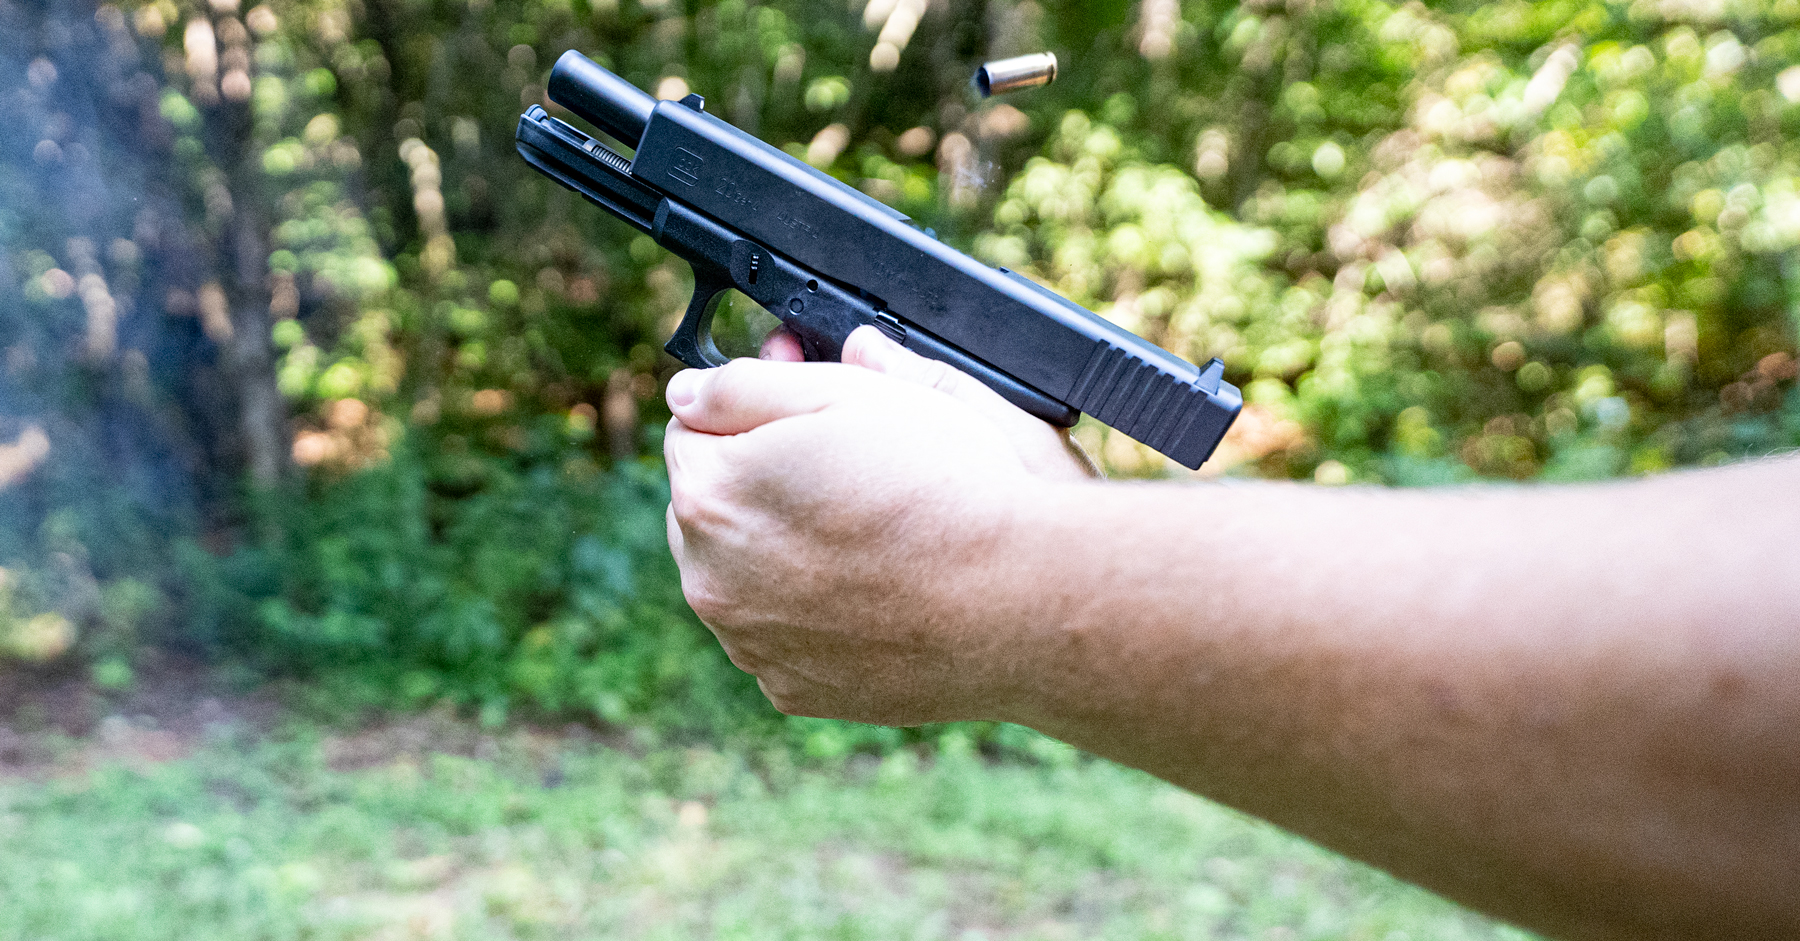 A pistol's recoil demonstrated at a shooting range